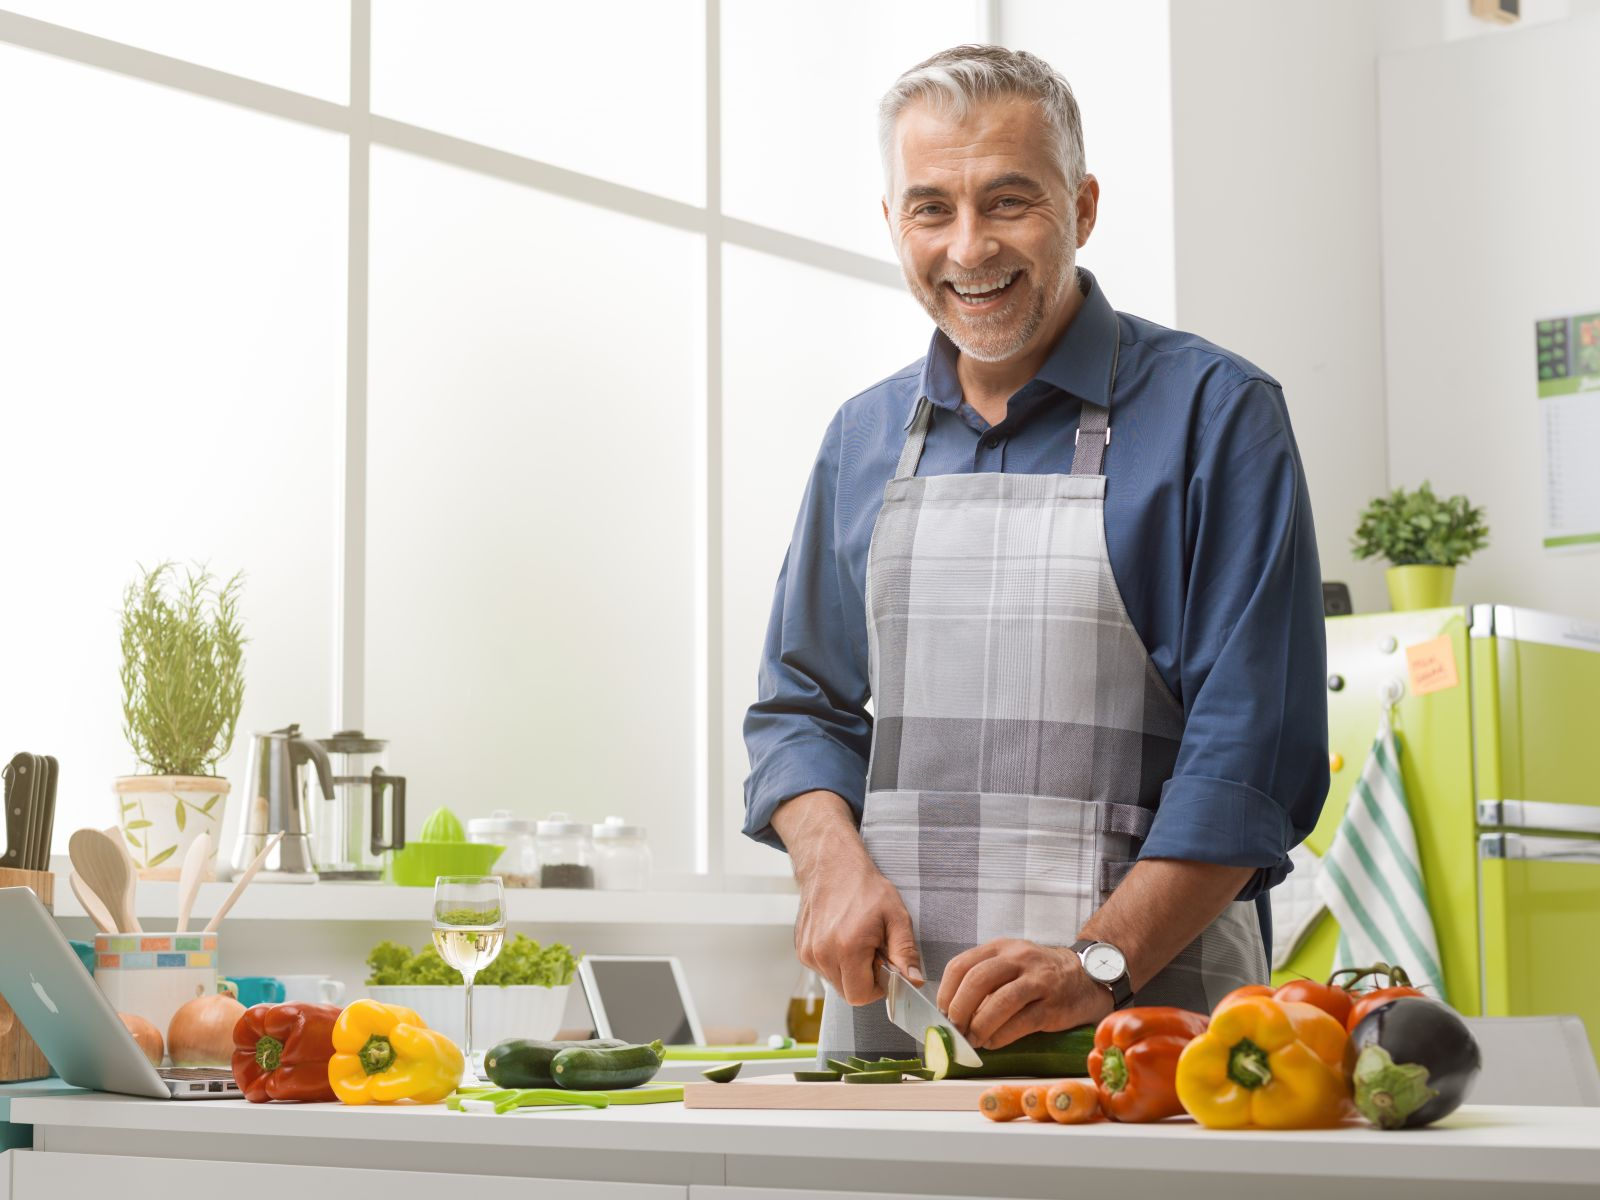 Can diet help fight prostate cancer?